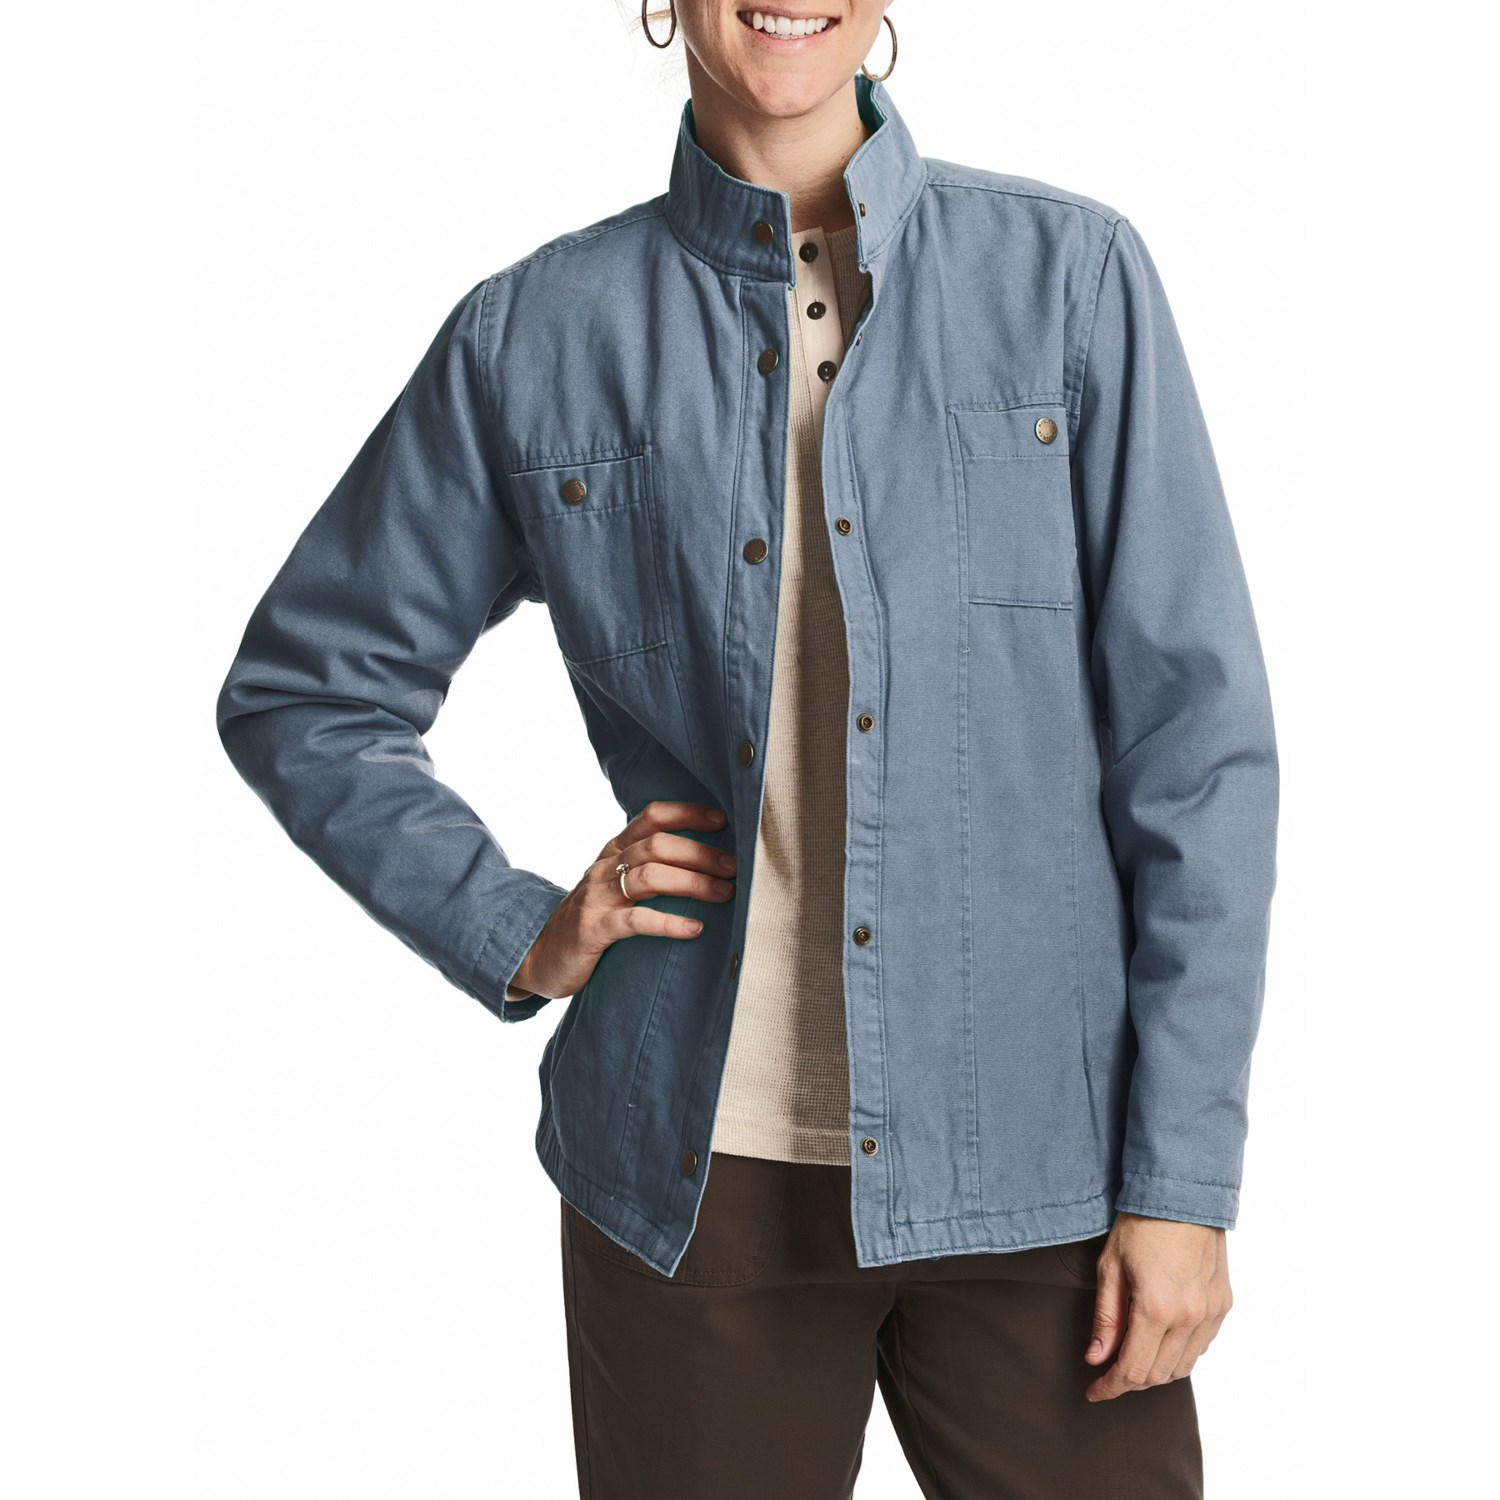 elm creek women 1 review of jjill the absolute best women's store for the over 50 women the clothing in this store caters to a much broader group than over 50's but has the fit, style and price point that really draws you in.